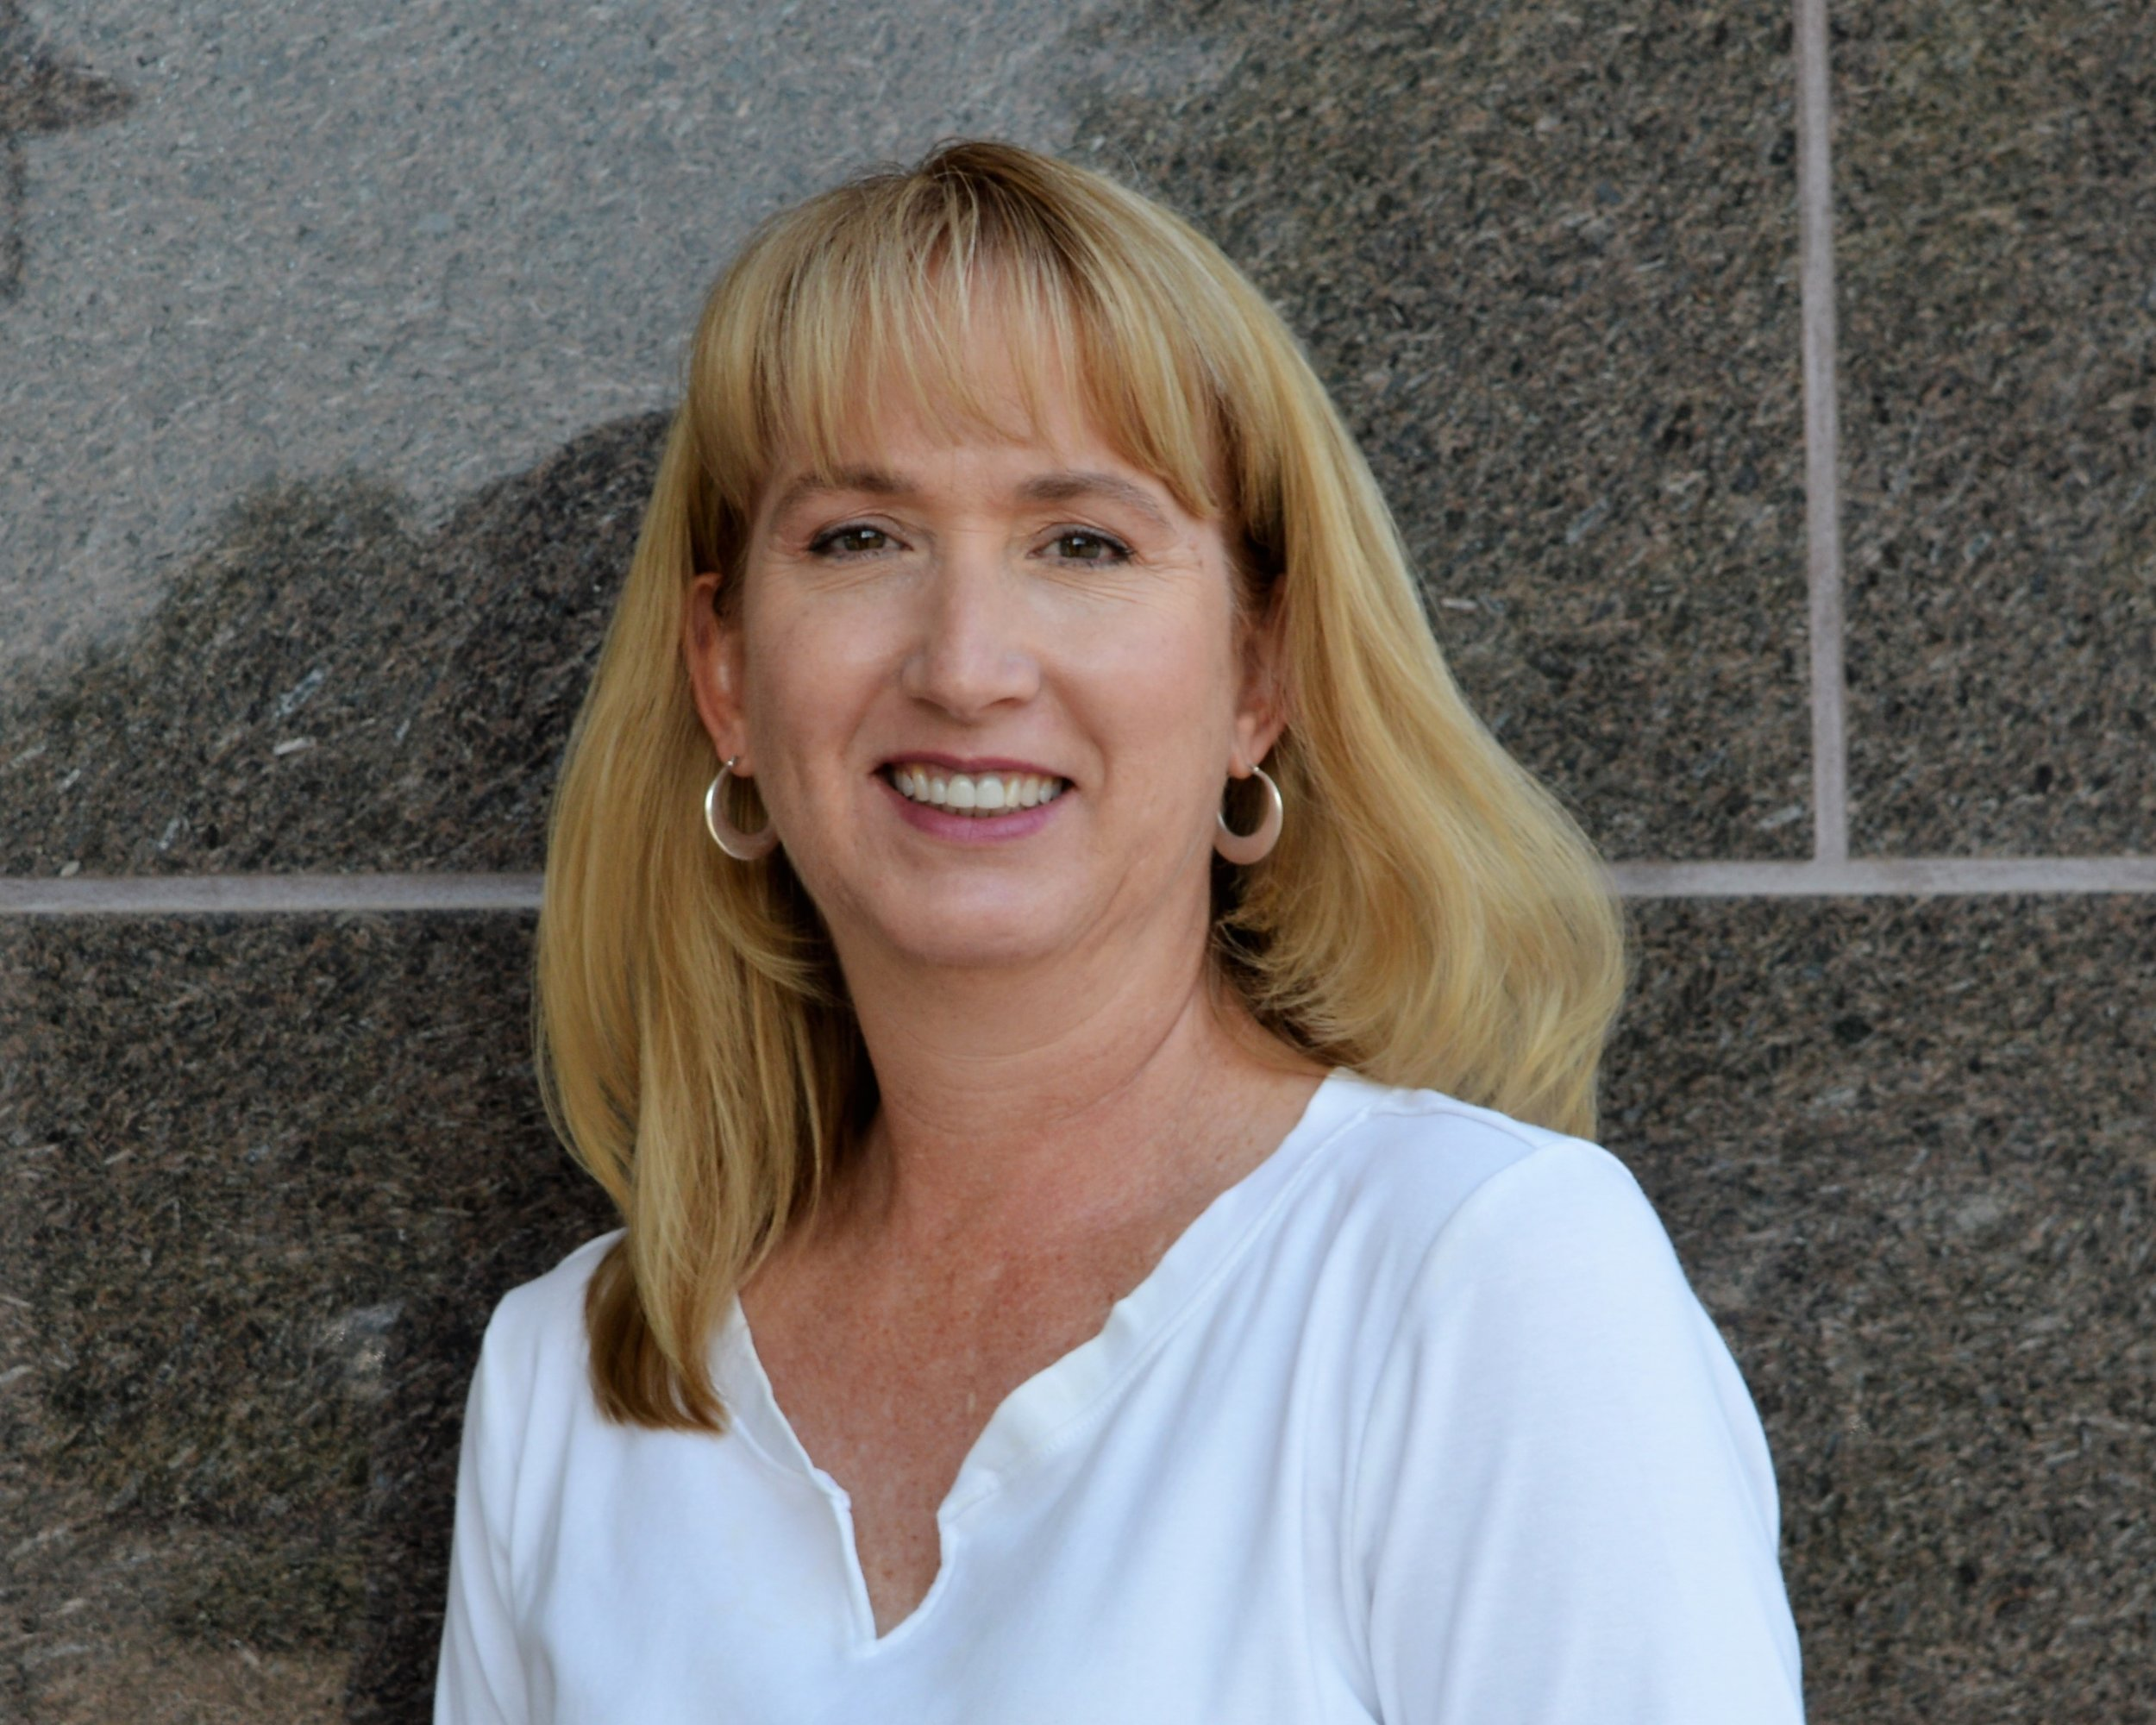 Karen Pessin - Human Resource CoordinatorOversees all company HR issues, policies, procedures, and business. Responsible for supporting the Management Team and the goals and initiatives of the company.